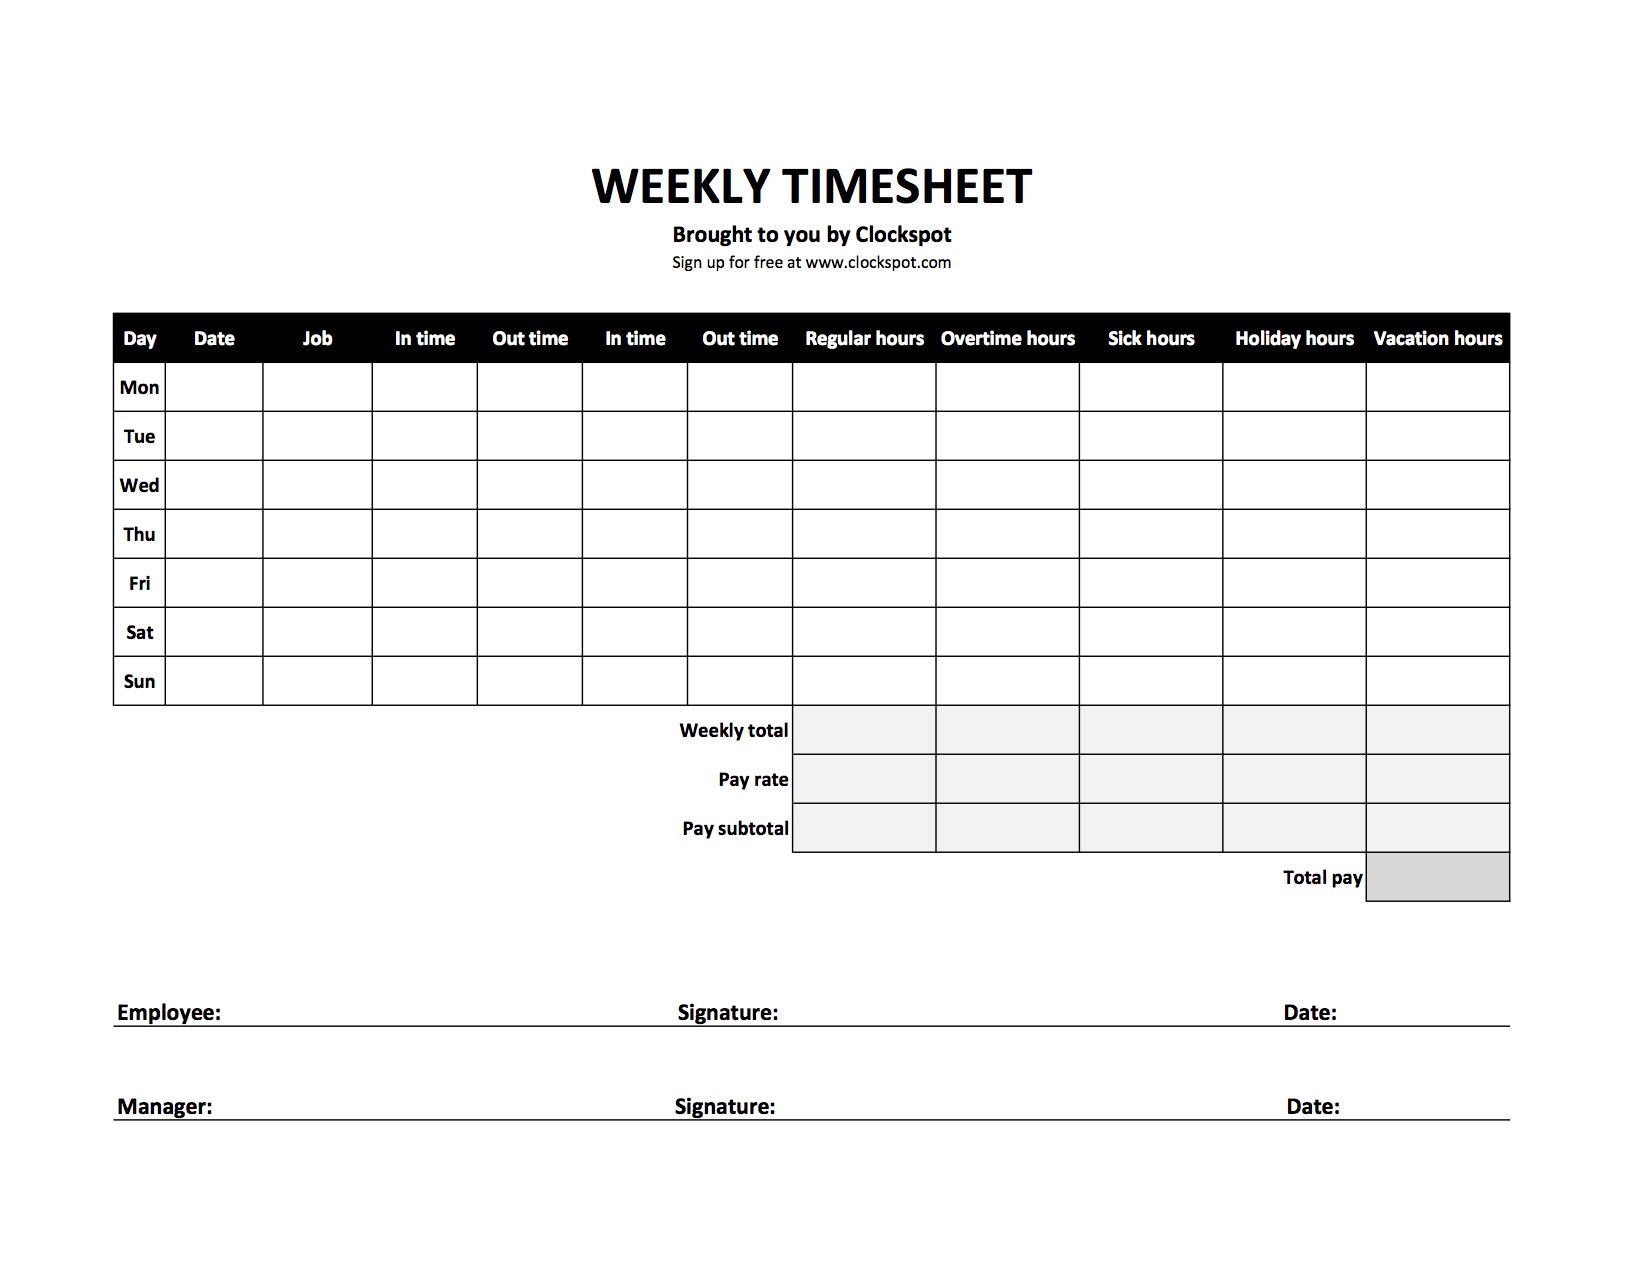 excel weekly timesheet screenshot